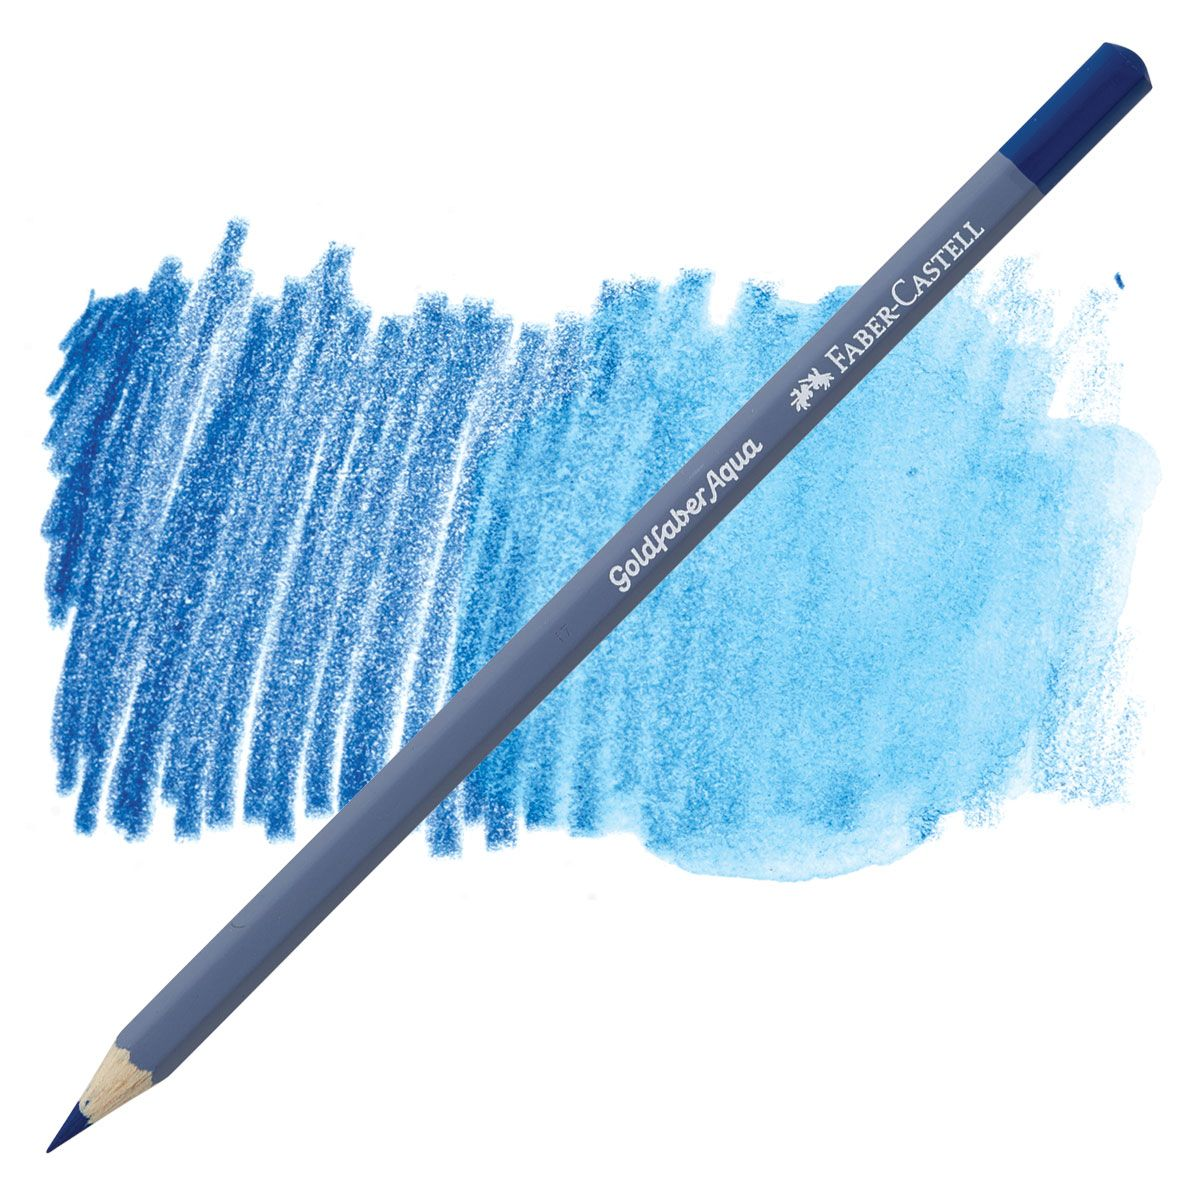 Watercolor Pencil Helioblue Reddish 151 By Faber Castell Stamp